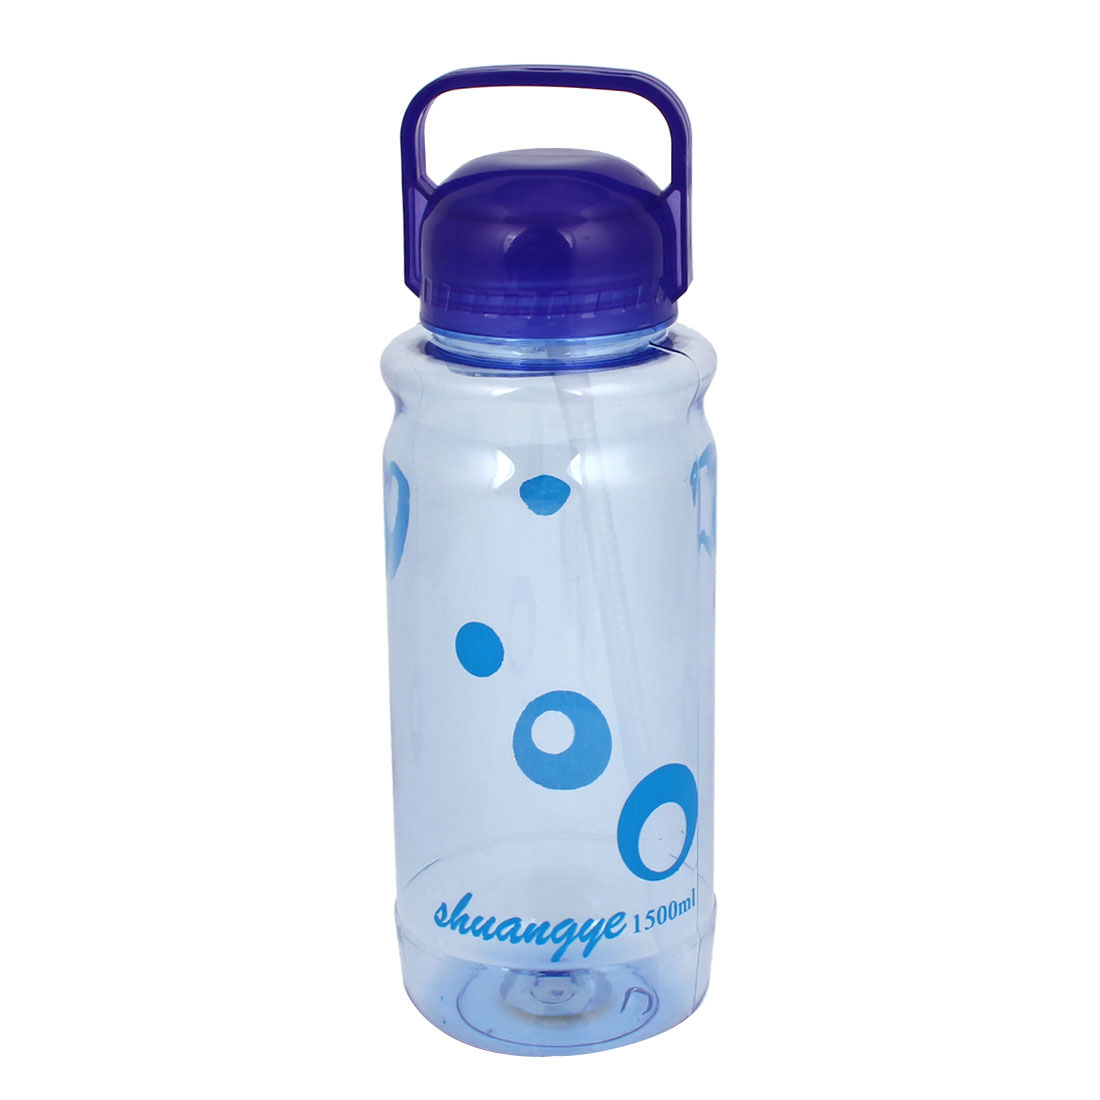 Camping Hiking Cylinder Shaped Water Drink Bottle Holder Clear Blue 1500ml